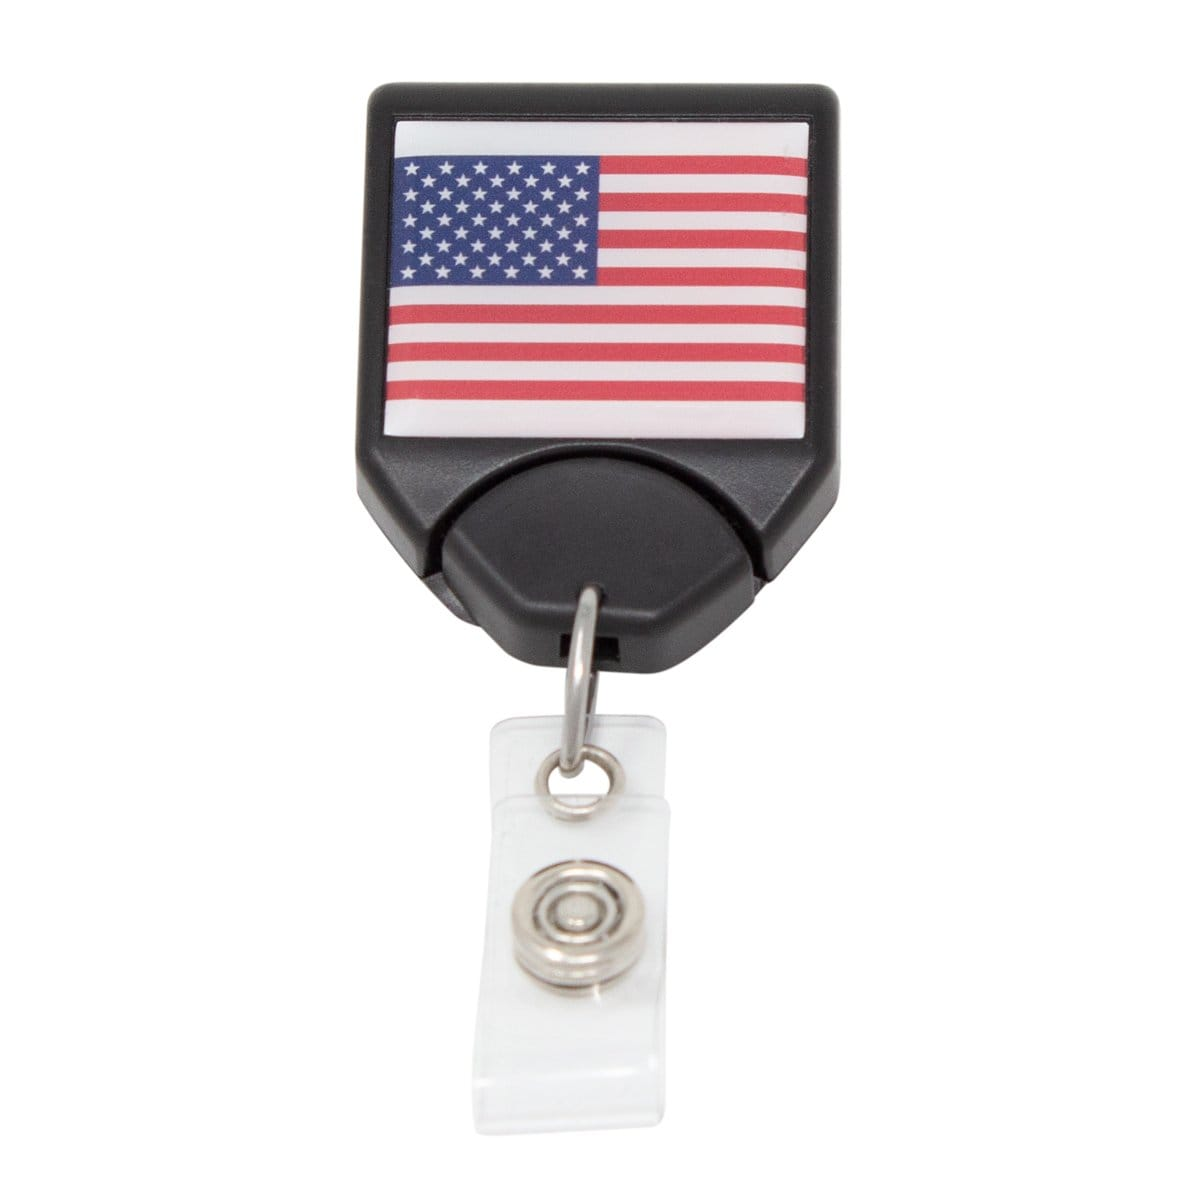 USA Patriotic Flag B-Reel with Swivel Clip (P/N 2120-7653)